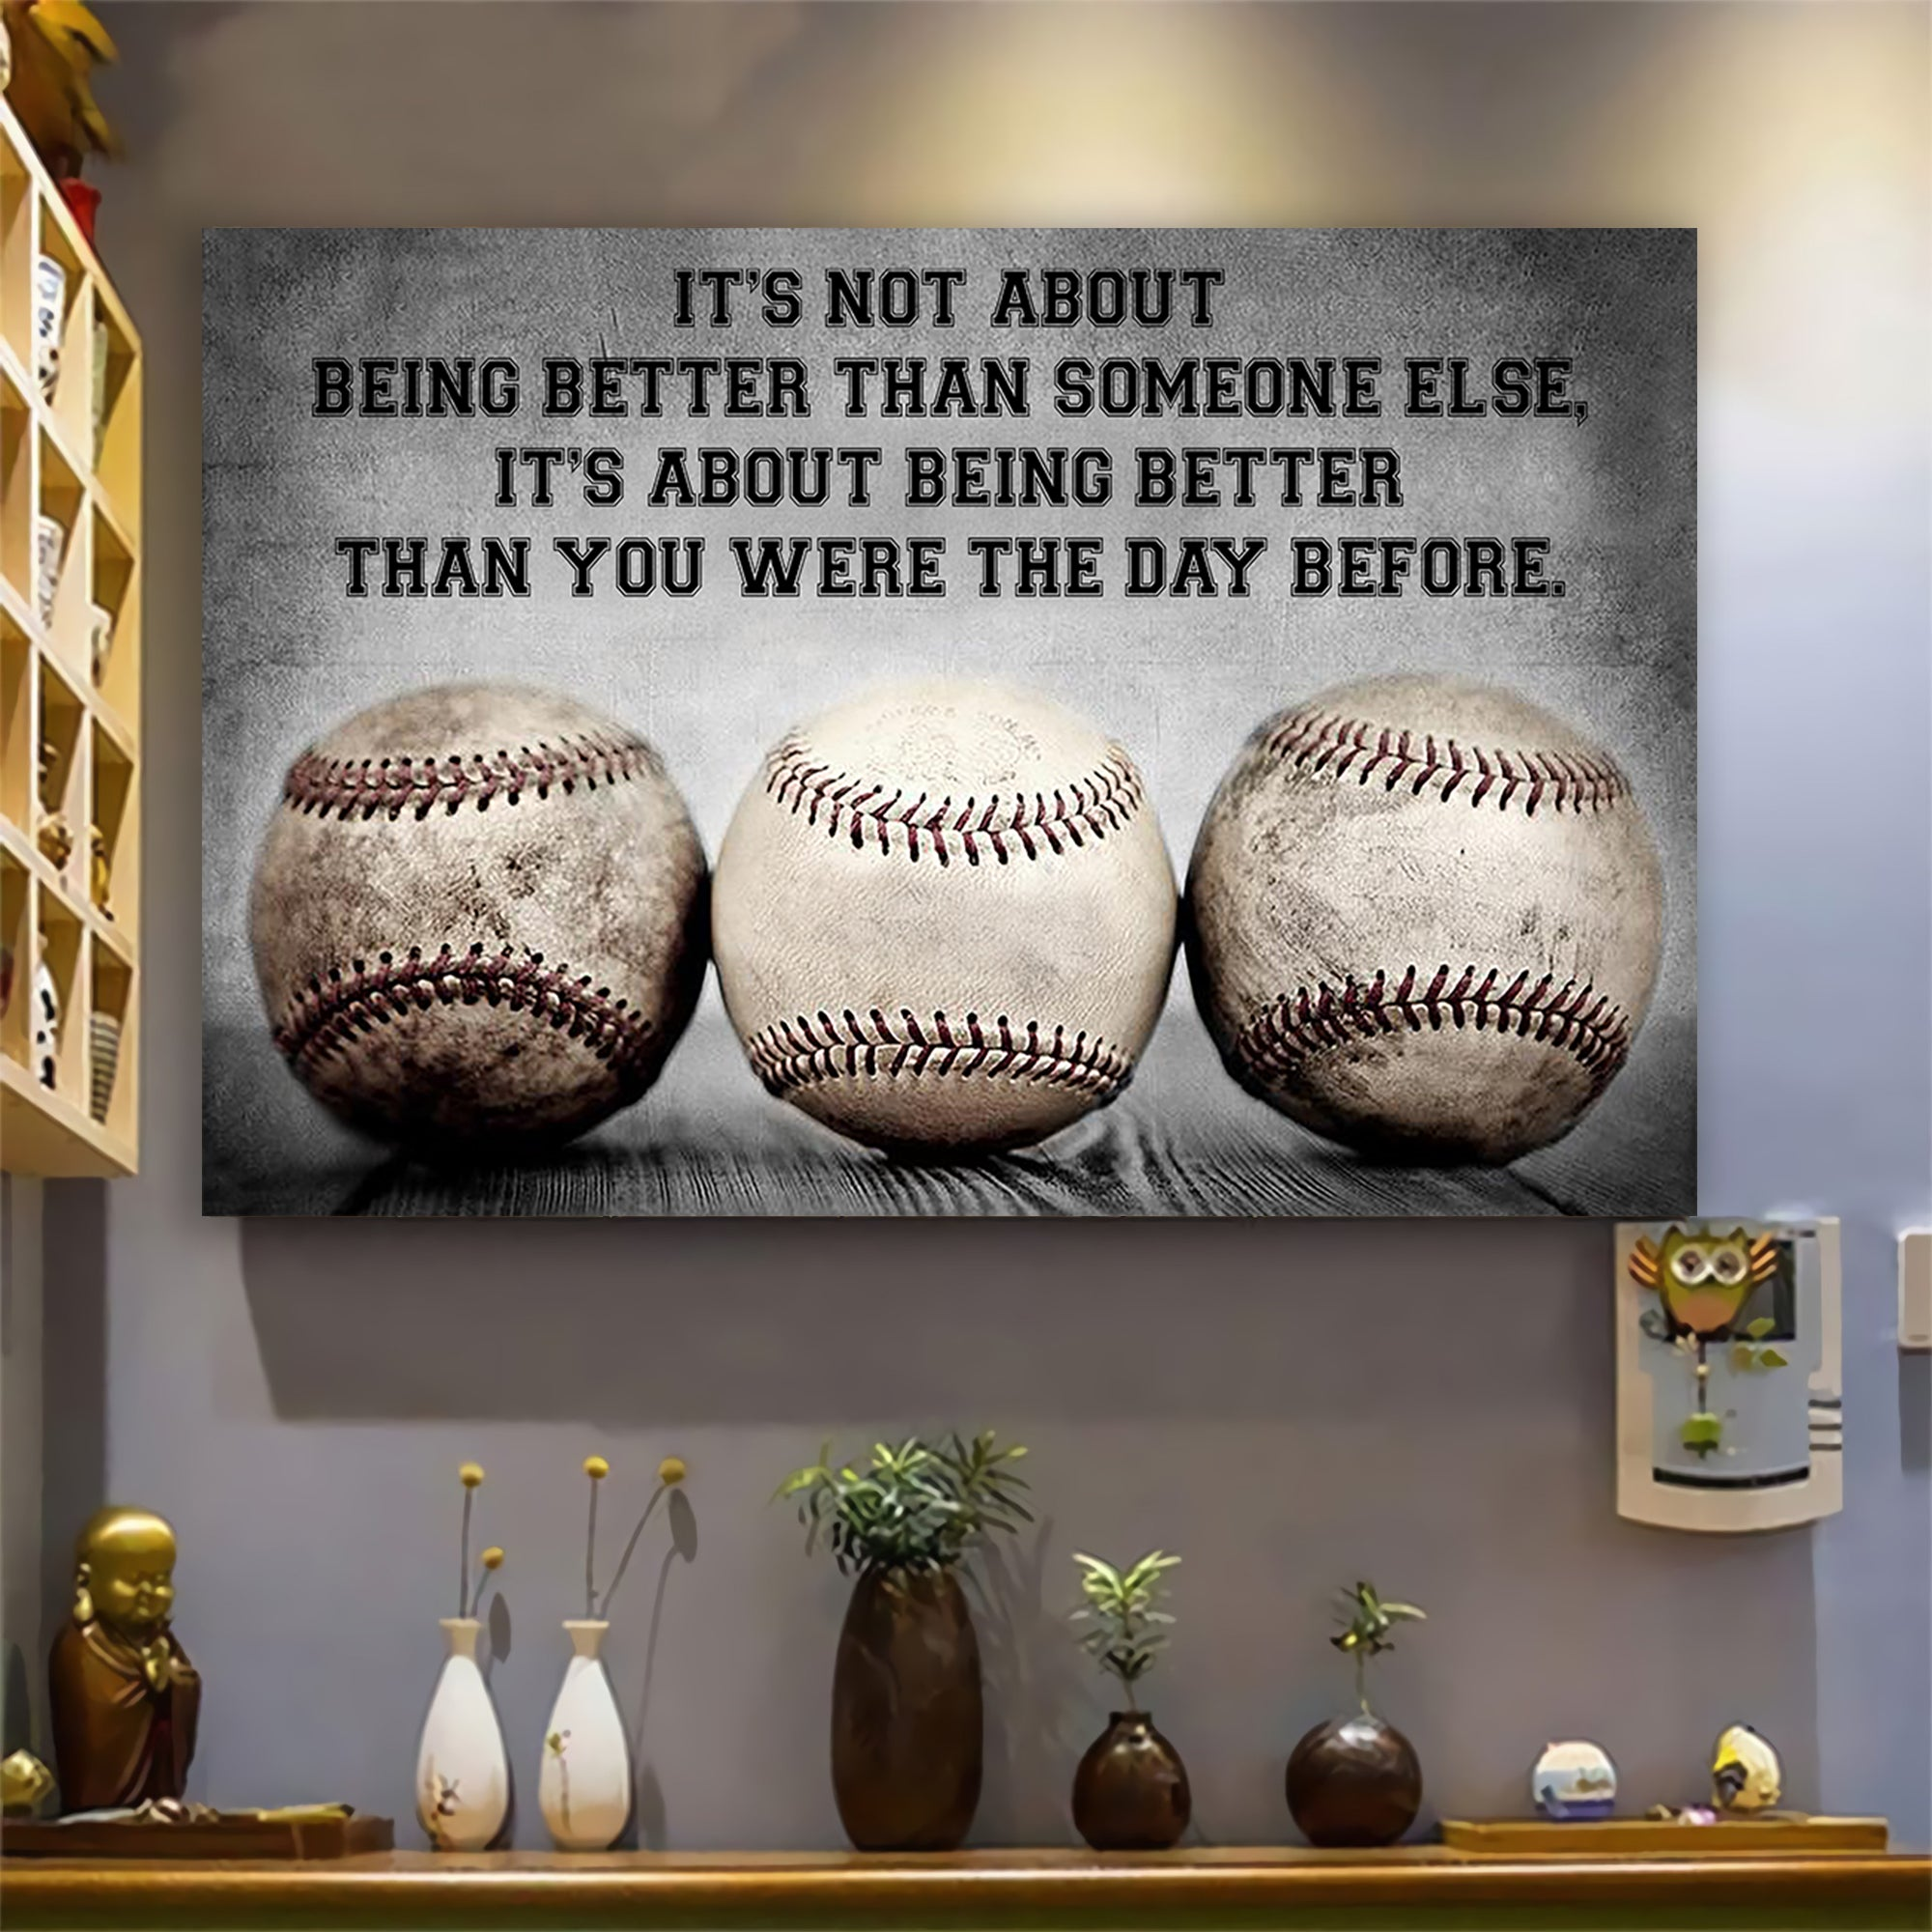 (LP361) Customizable Baseball Poster, Canvas - It's not about - FREE SHIPPING ON ORDERS OVER 75$